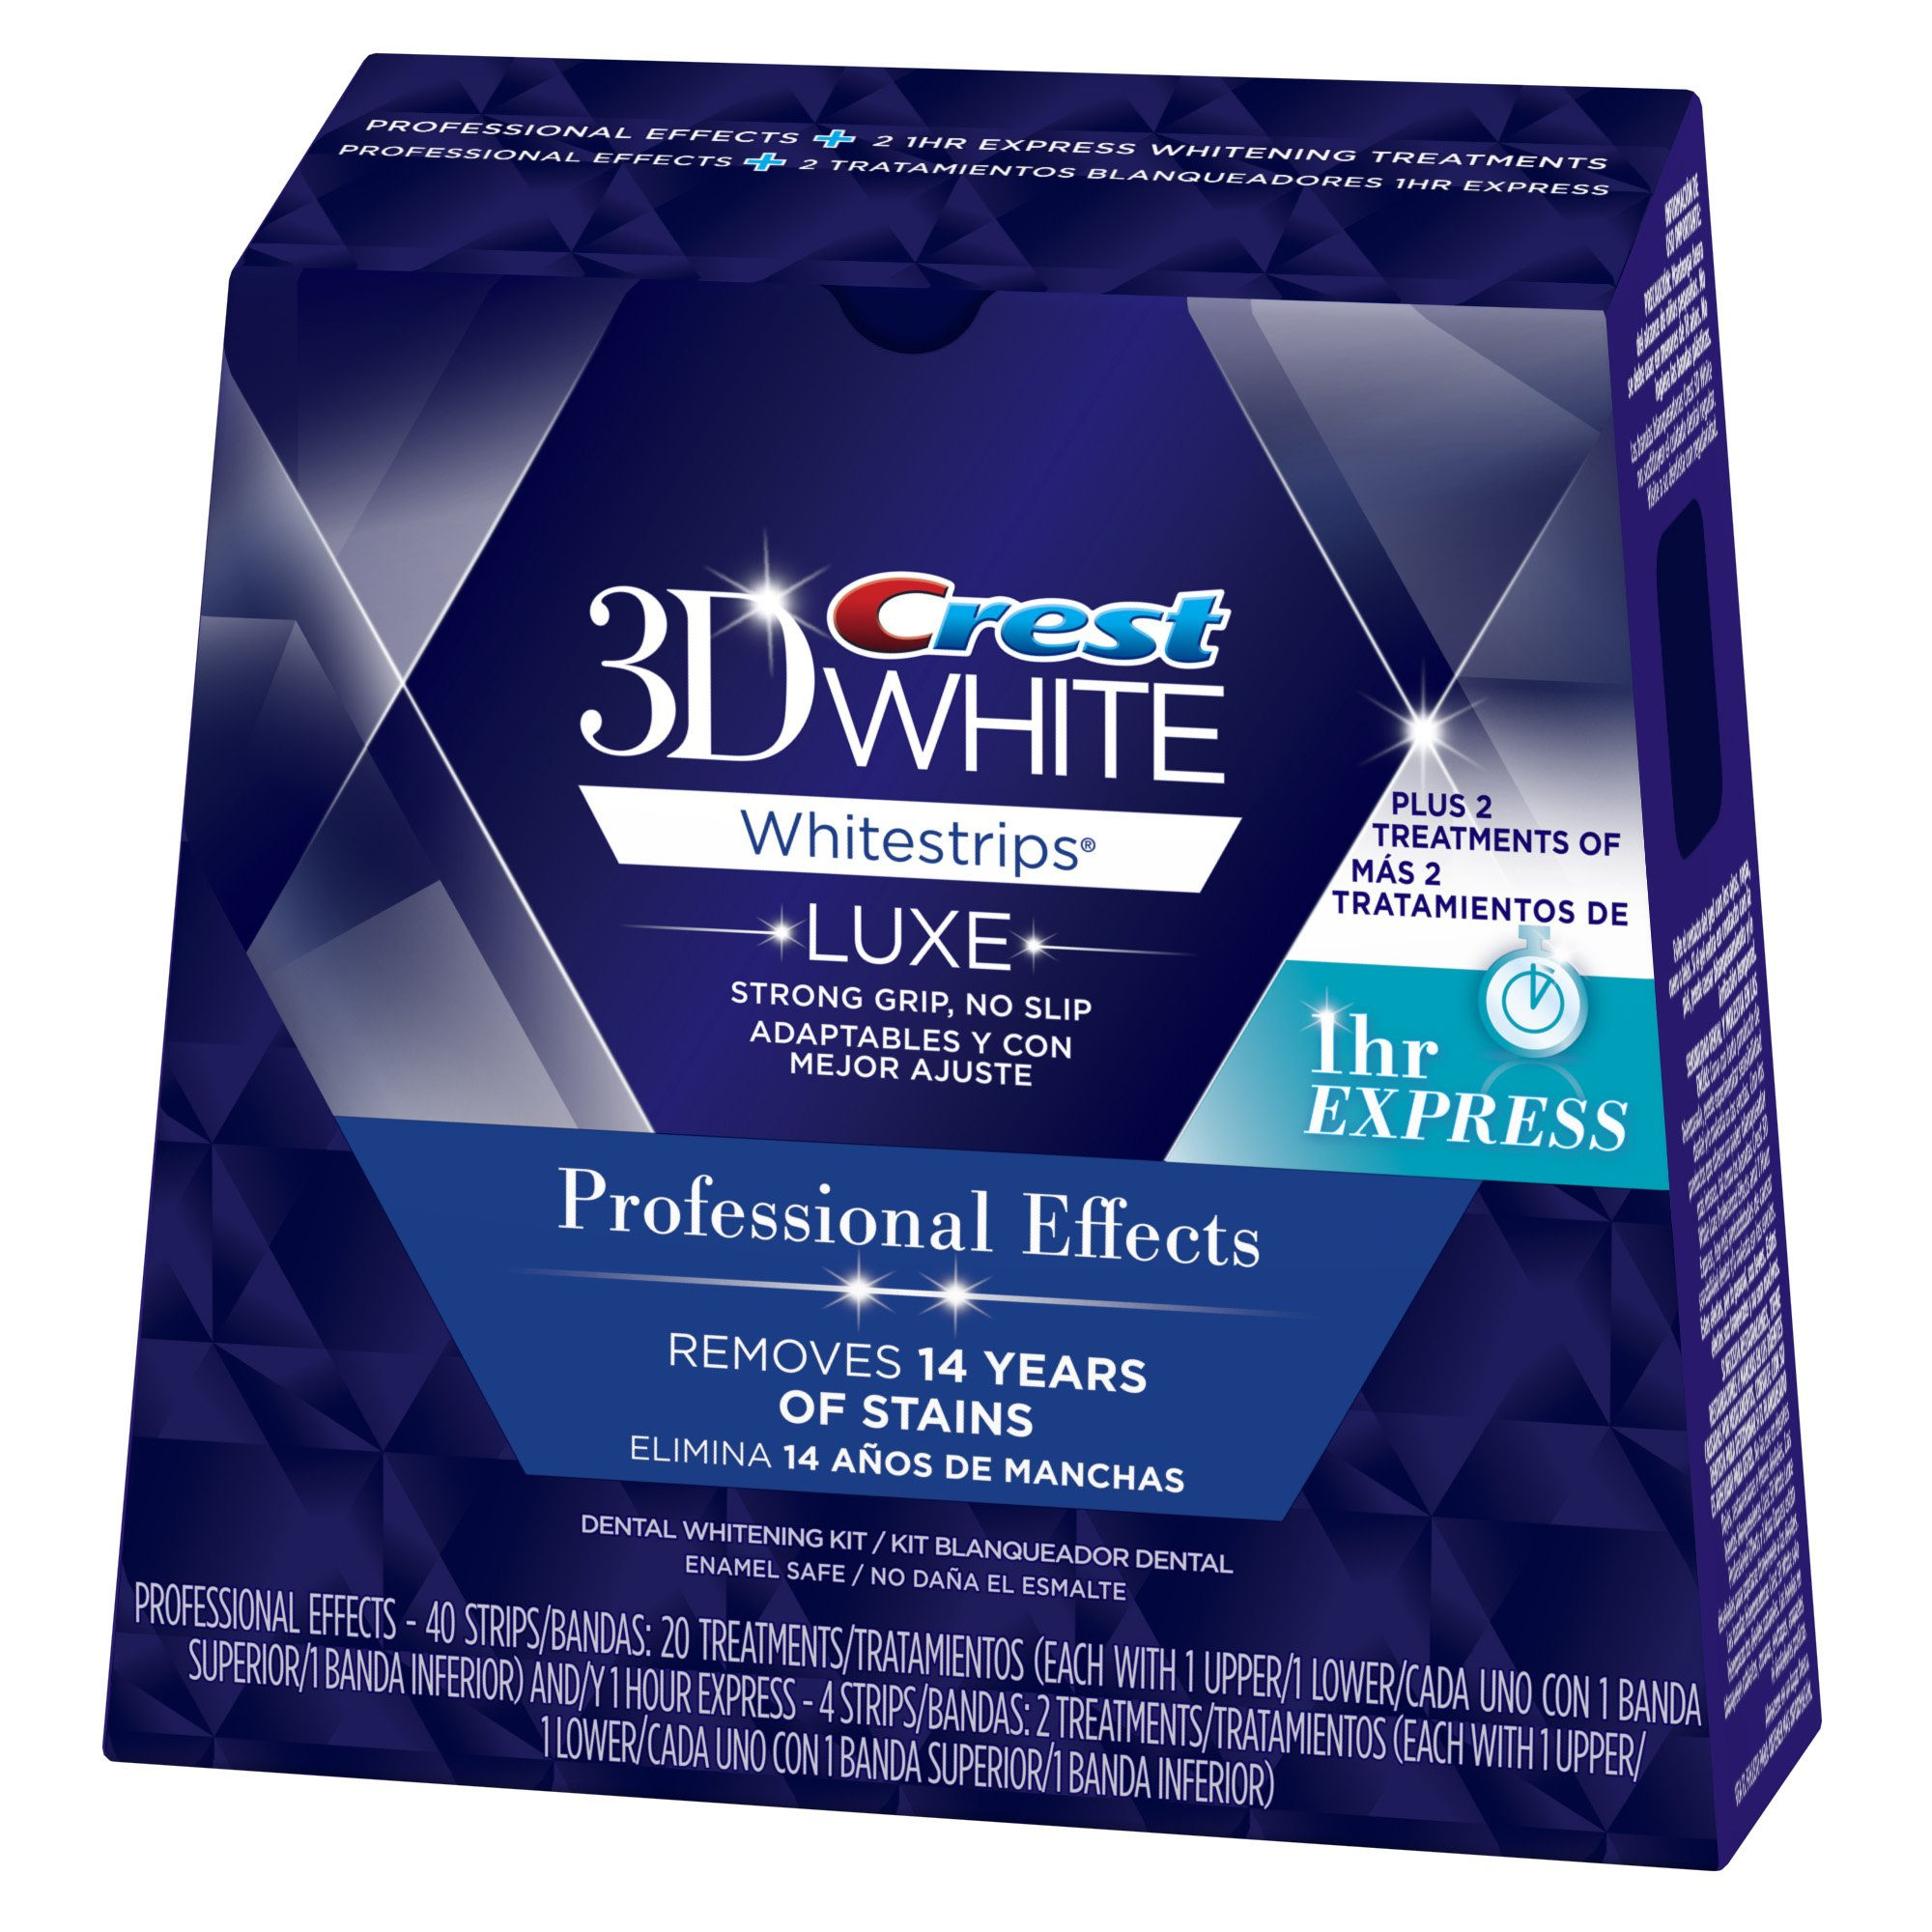 Crest 3D White Professional Effects Whitestrips Teeth Whitening Kit